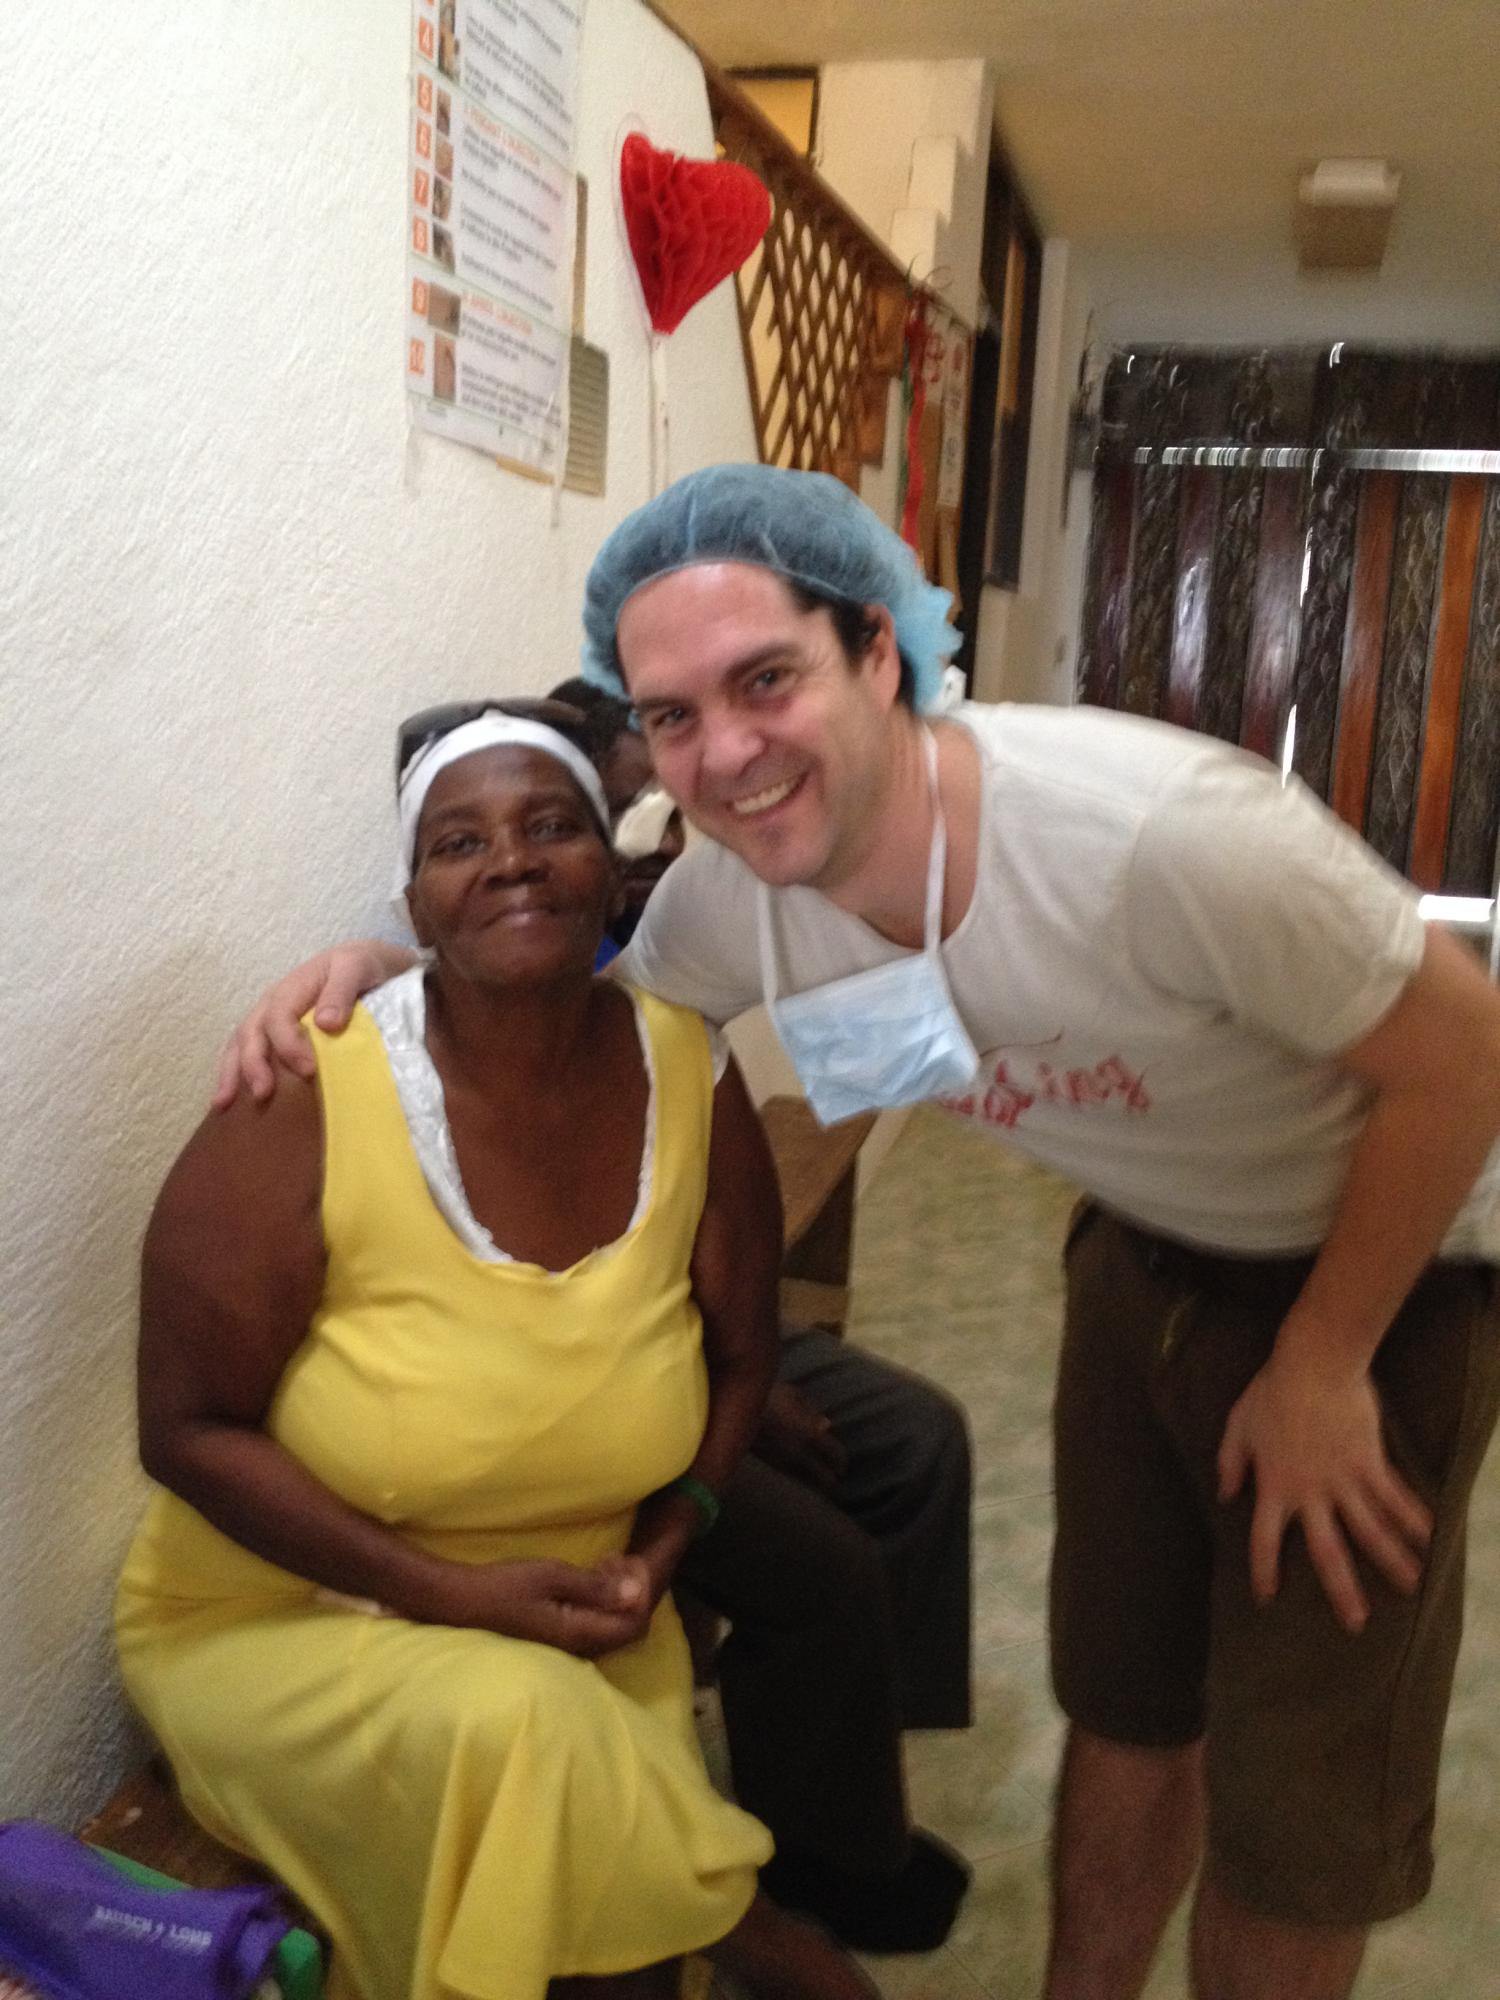 Jair_with_patient_Fleurima_Gracieuse_whose_vision_cured__IMG_4003.JPG